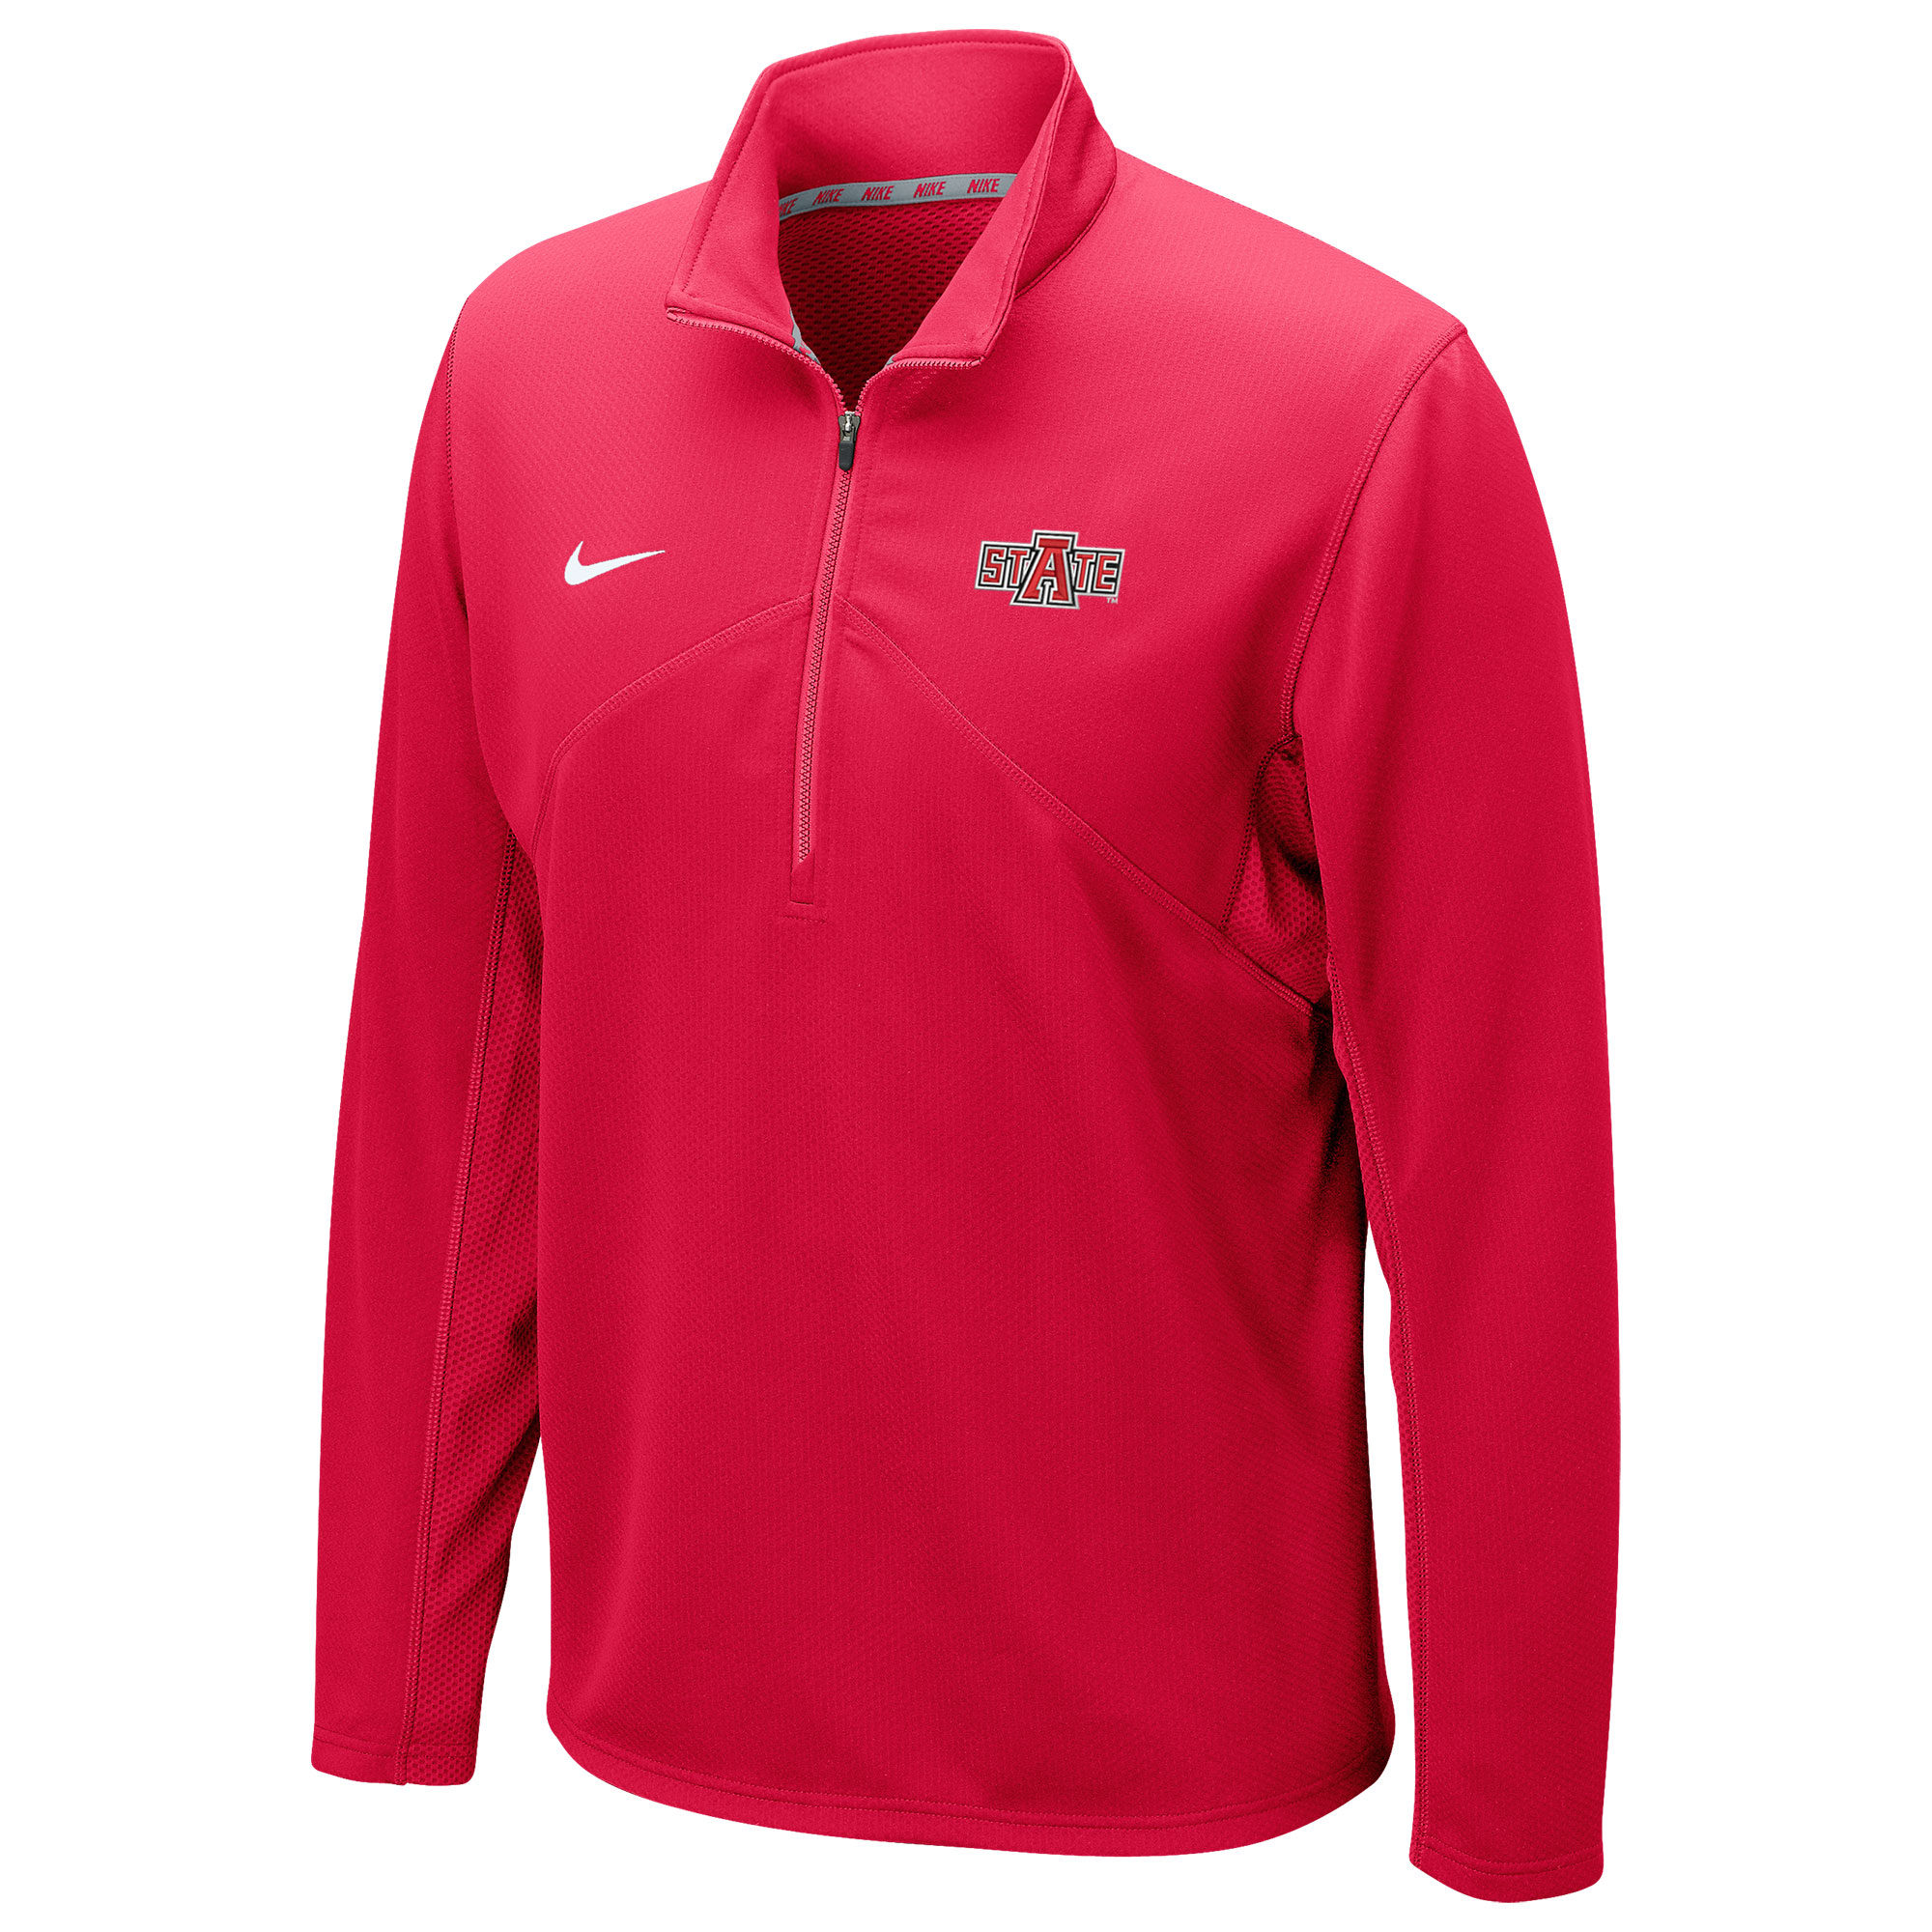 Arkansas State DriFit Training 1/4 Zip Top